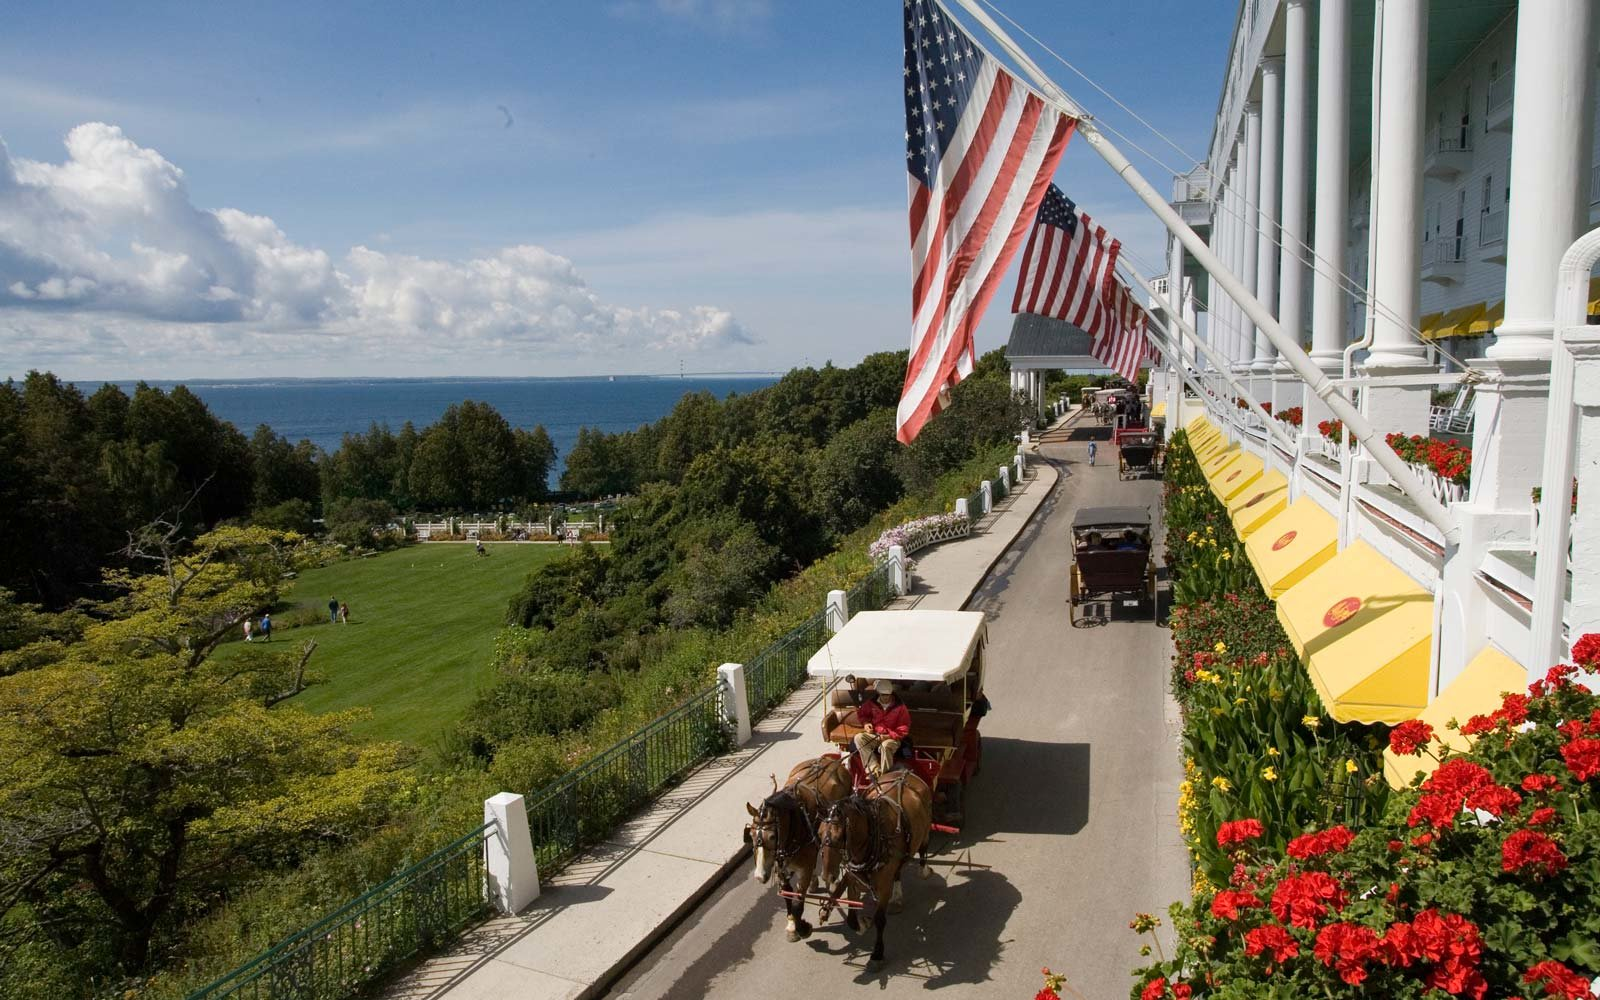 2. Grand Hotel, Mackinac Island, Michigan